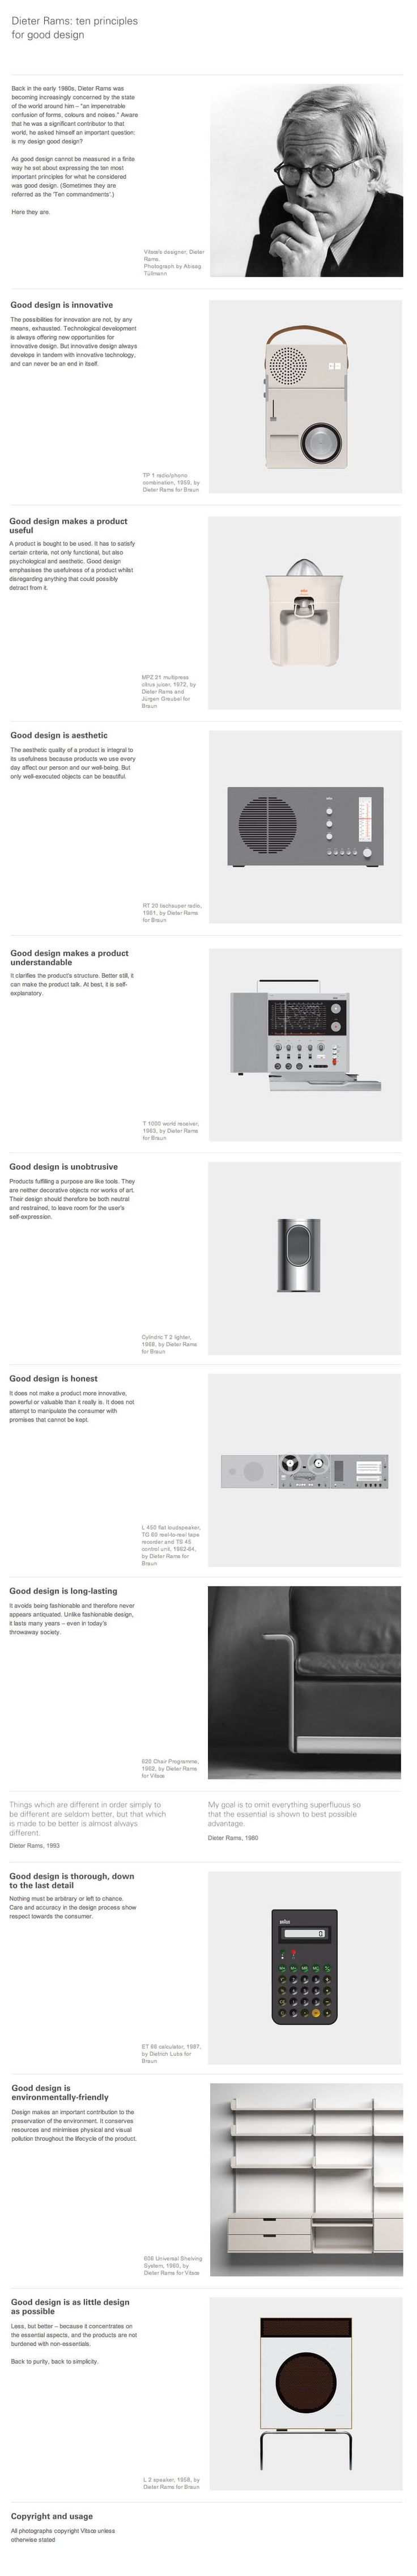 10 Principles For Good Design ; Dieter rams #infographic